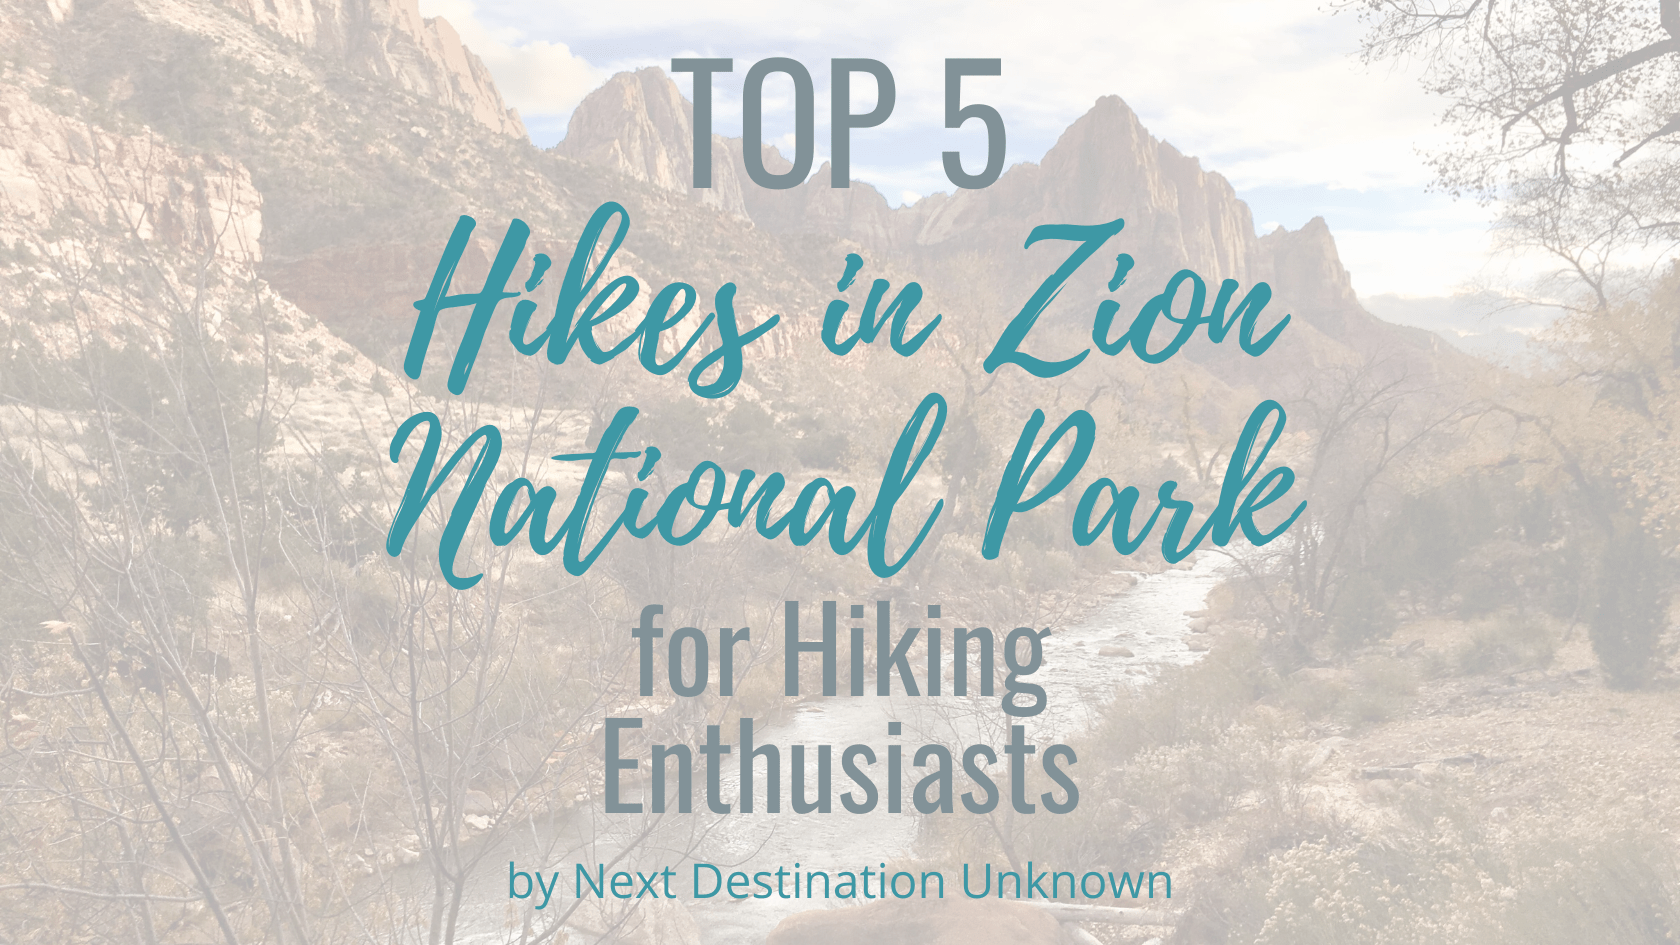 Top 5 Hikes in Zion National Park